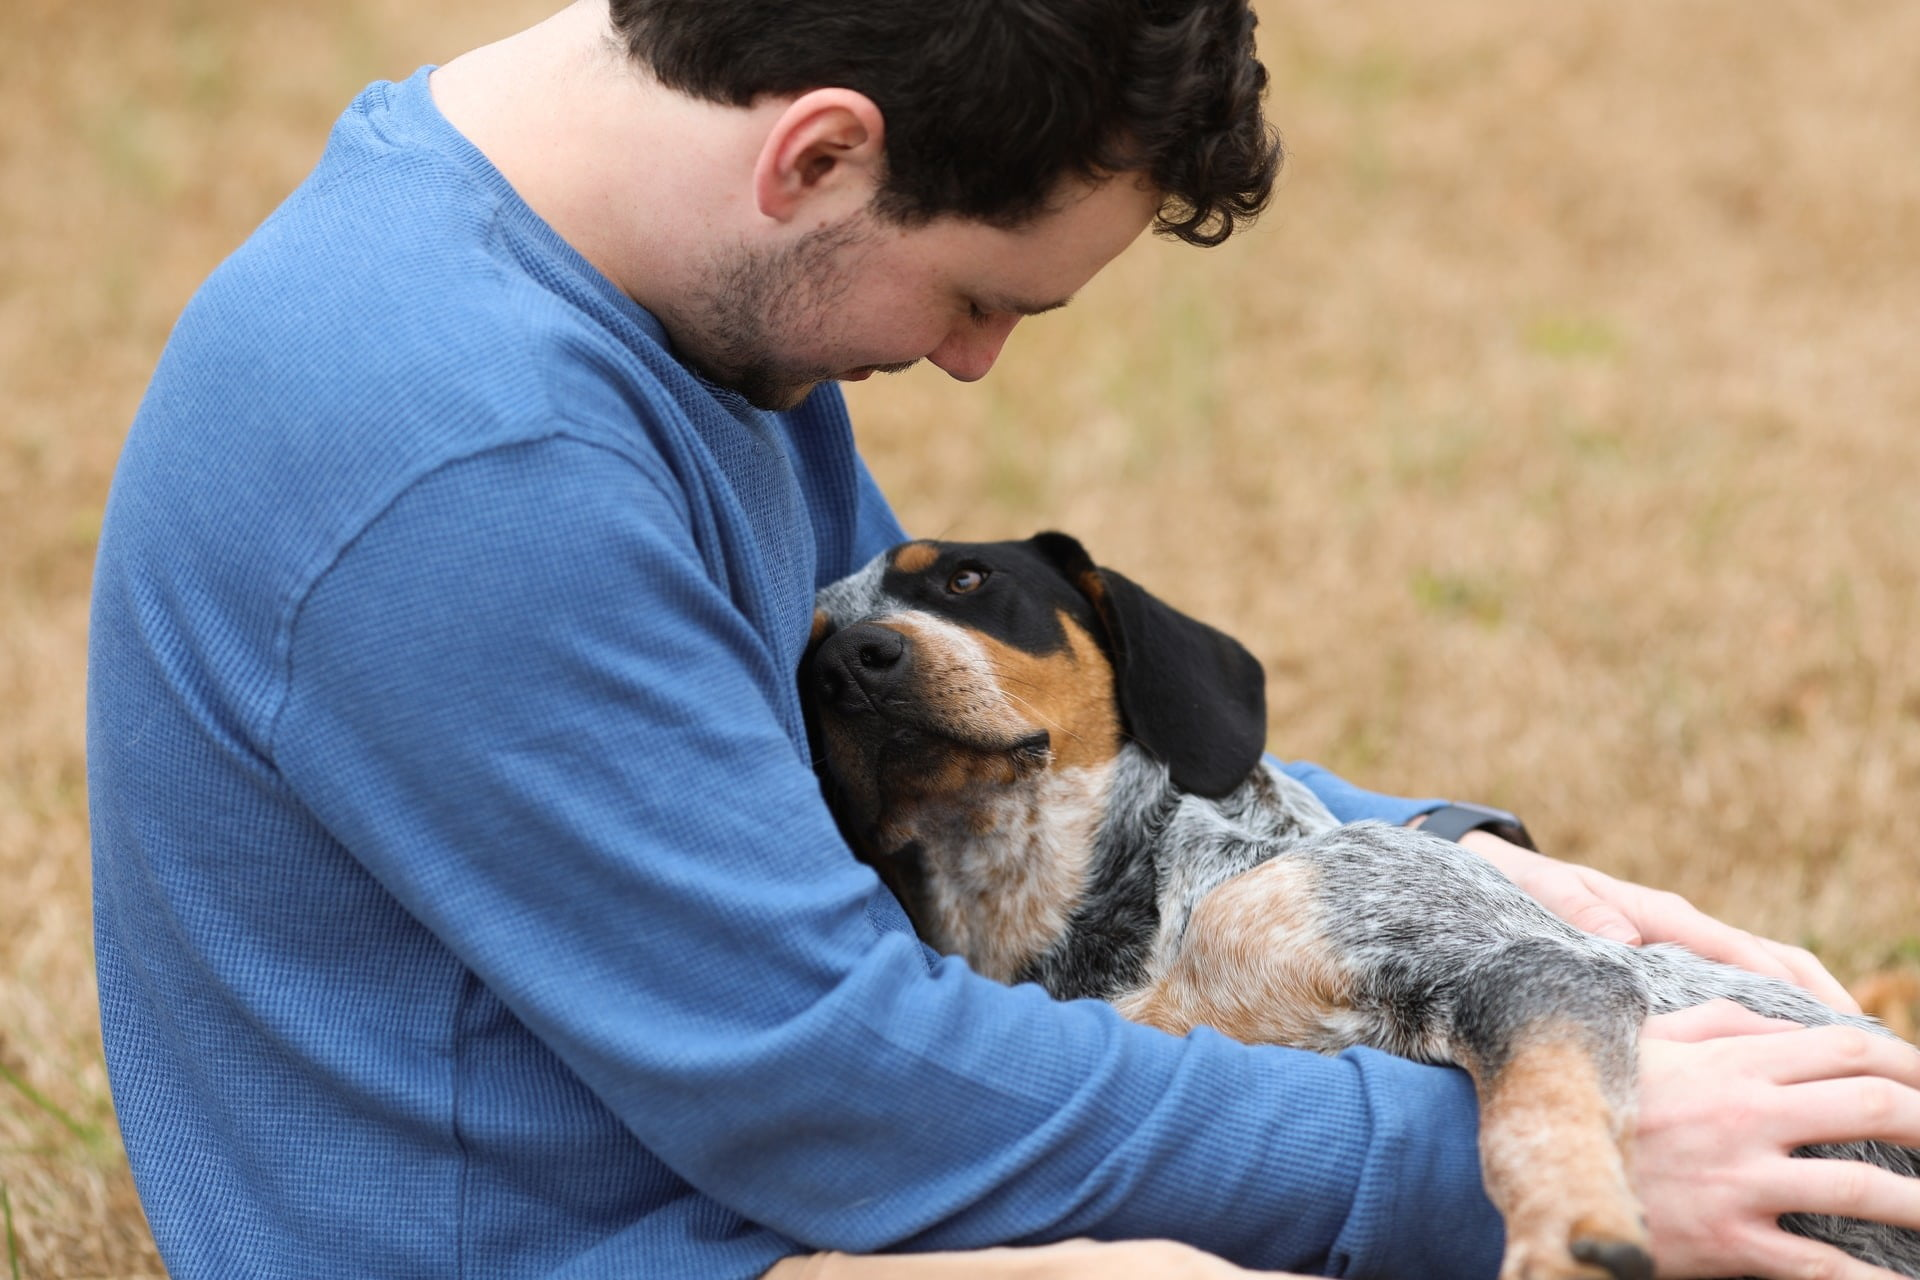 5 tips from the experts to stop a dog's excessive guarding | PawTracks